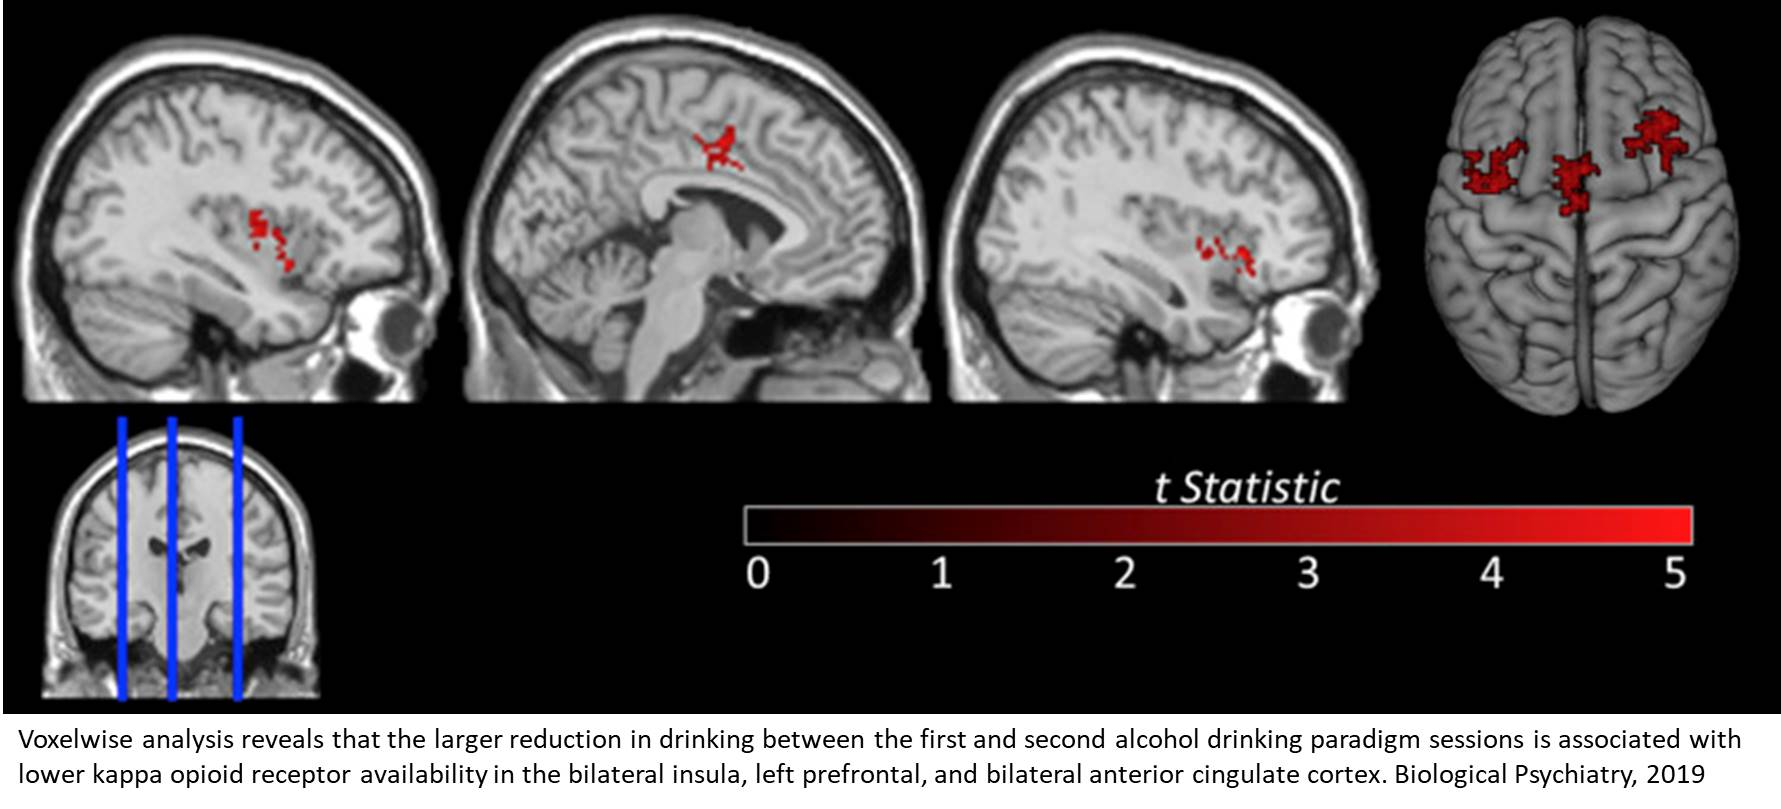 Kappa opioid receptor is associated with naltrexone-induced reduced drinking alcohol and craving